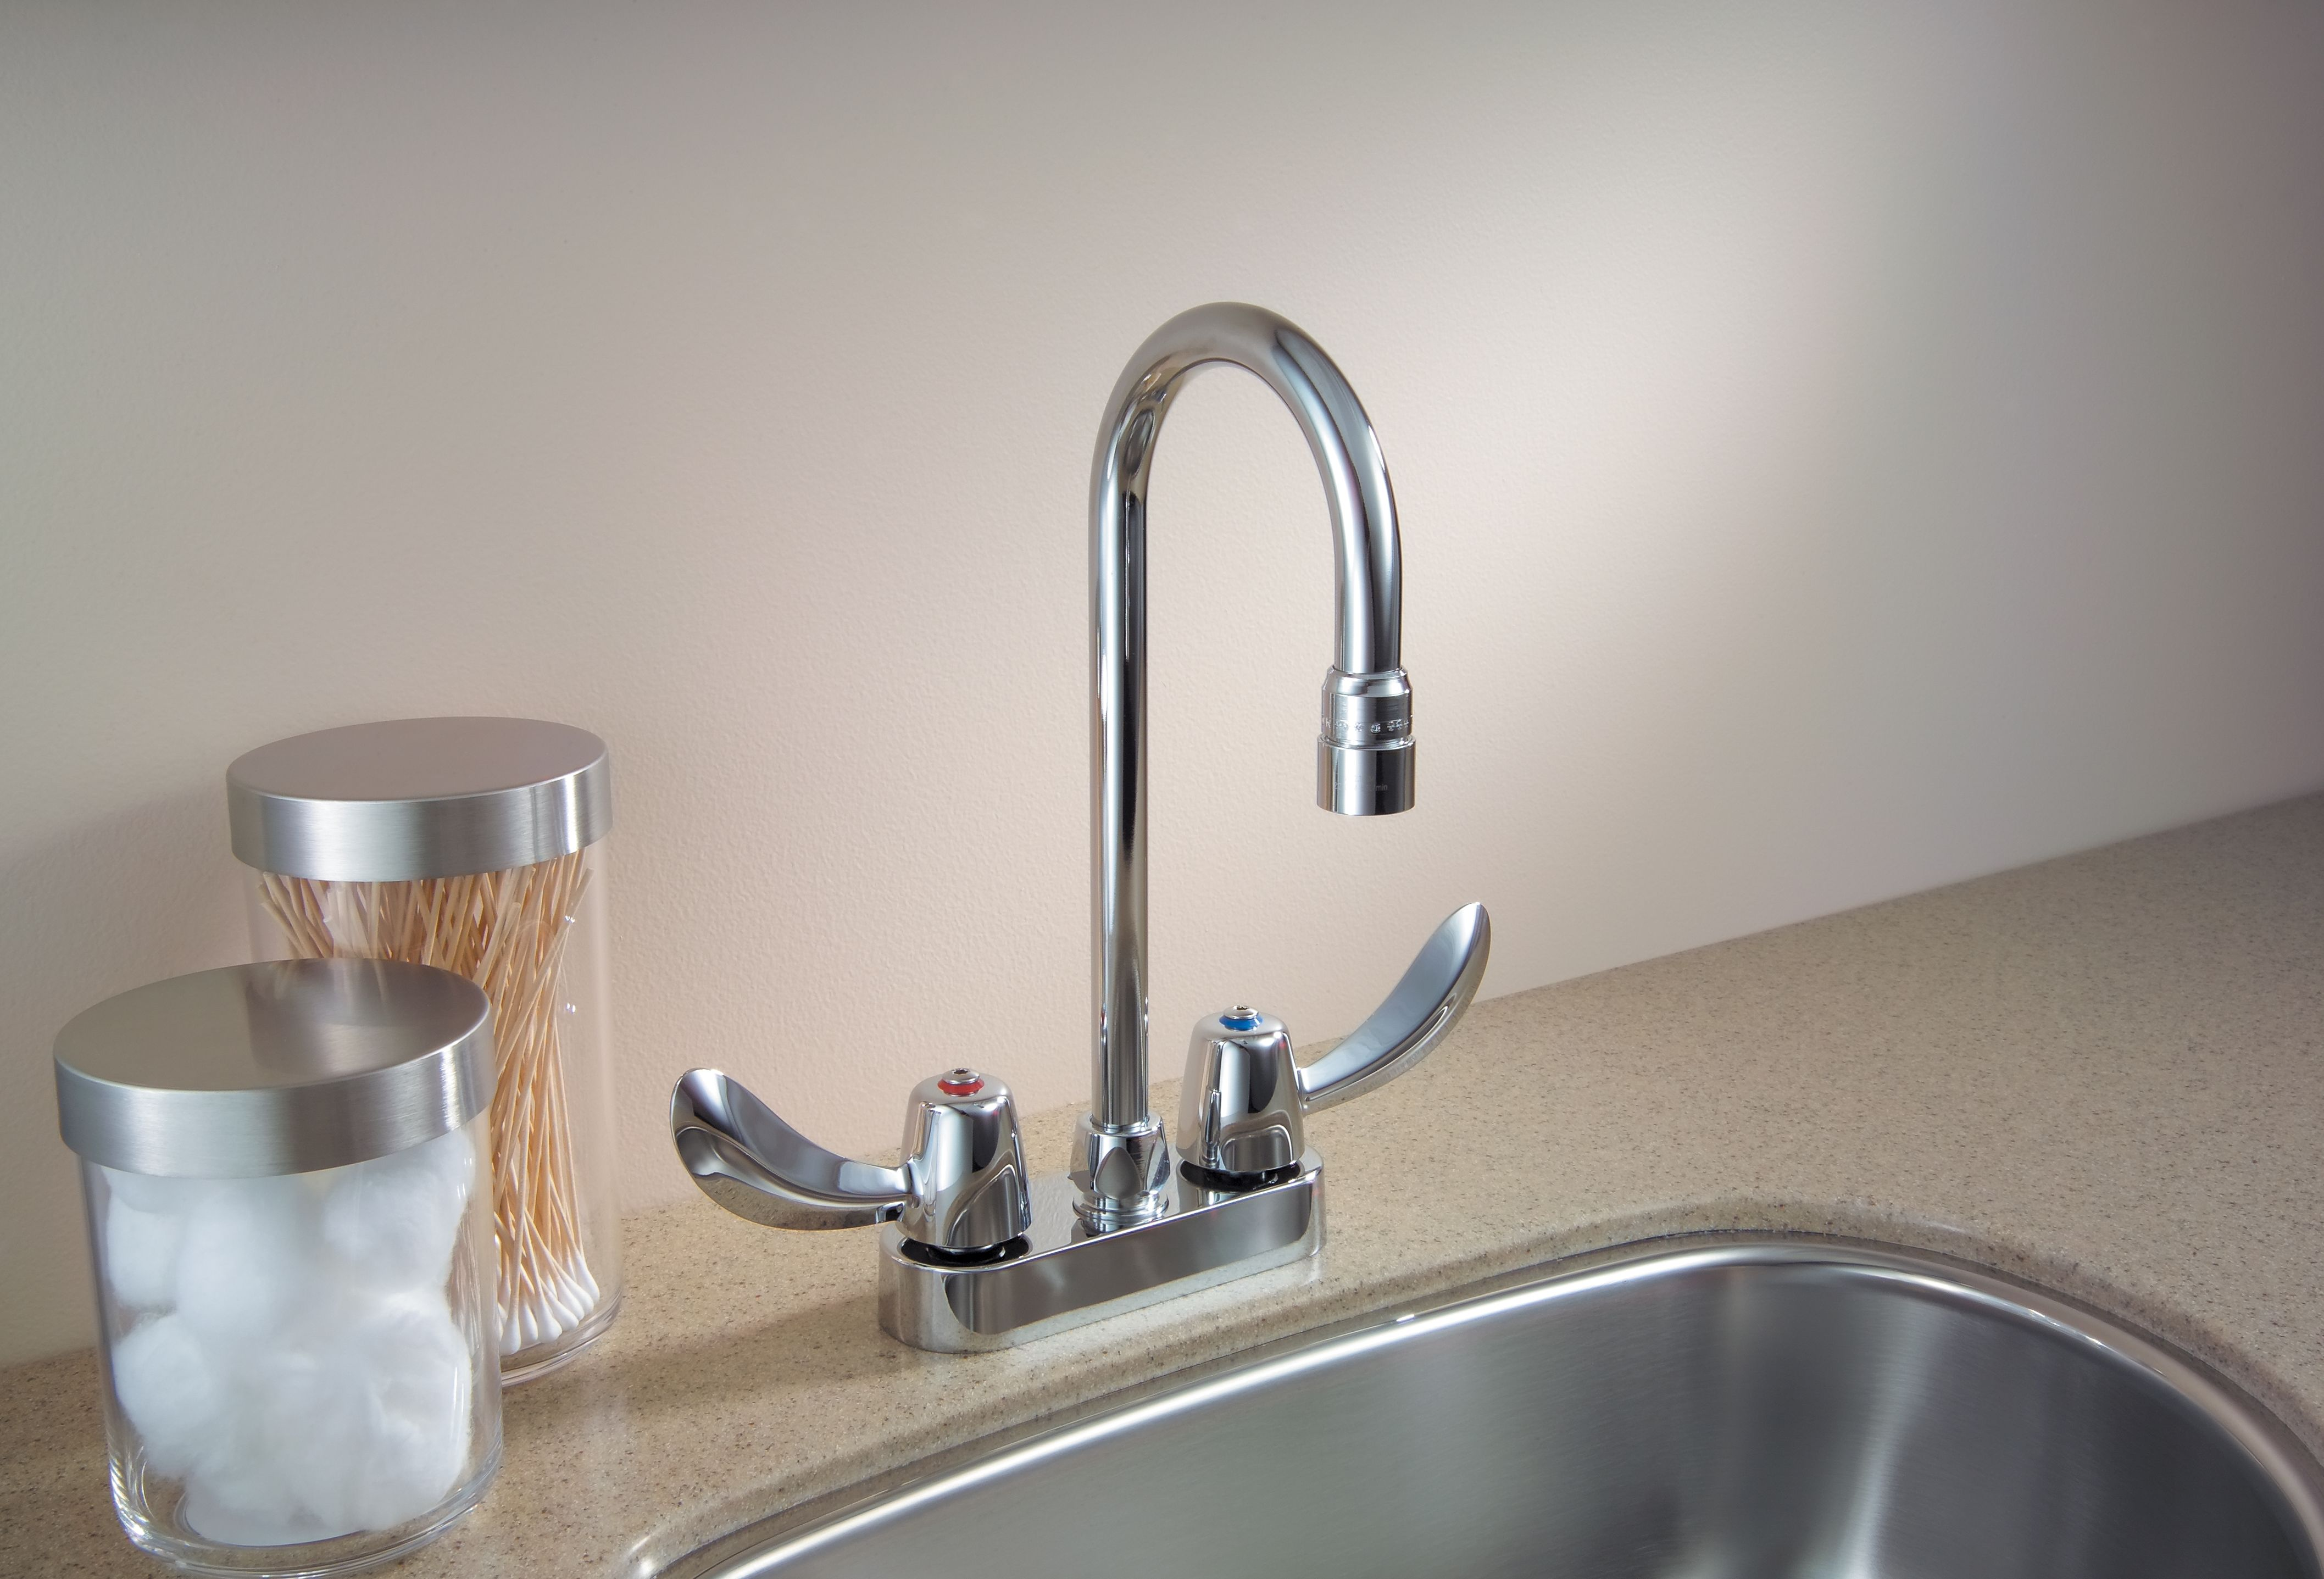 """Delta 27C4832 Chrome Double Handle 1.5GPM Ceramic Disc Bathroom Faucet with Hooded Blade Handles 10-1/2"""" Gooseneck Spout and Vandal Resistant Aerator from ..."""